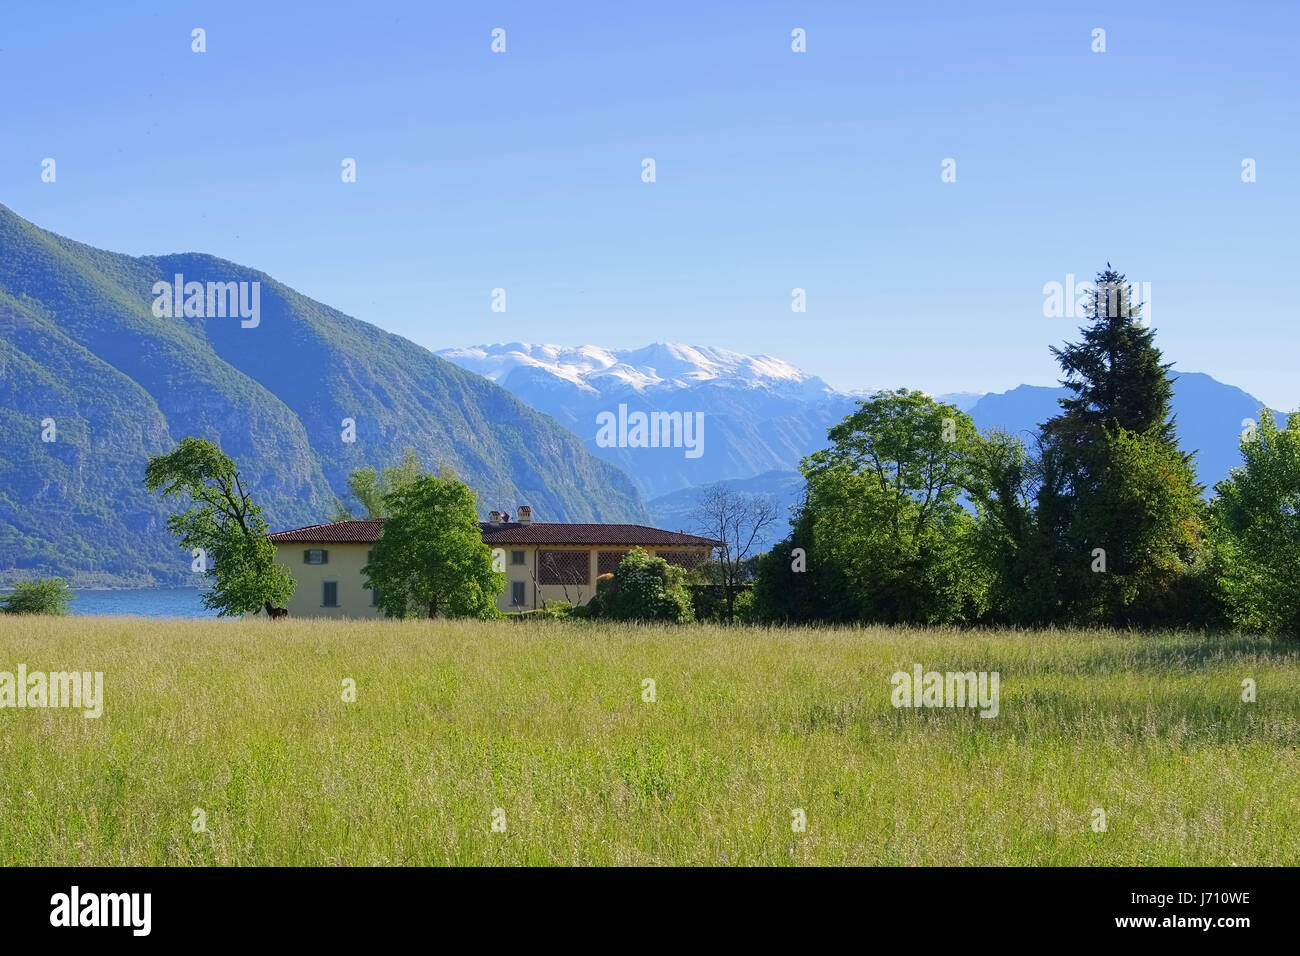 Iseo lake and small house, Lombardy in Italy - Stock Image